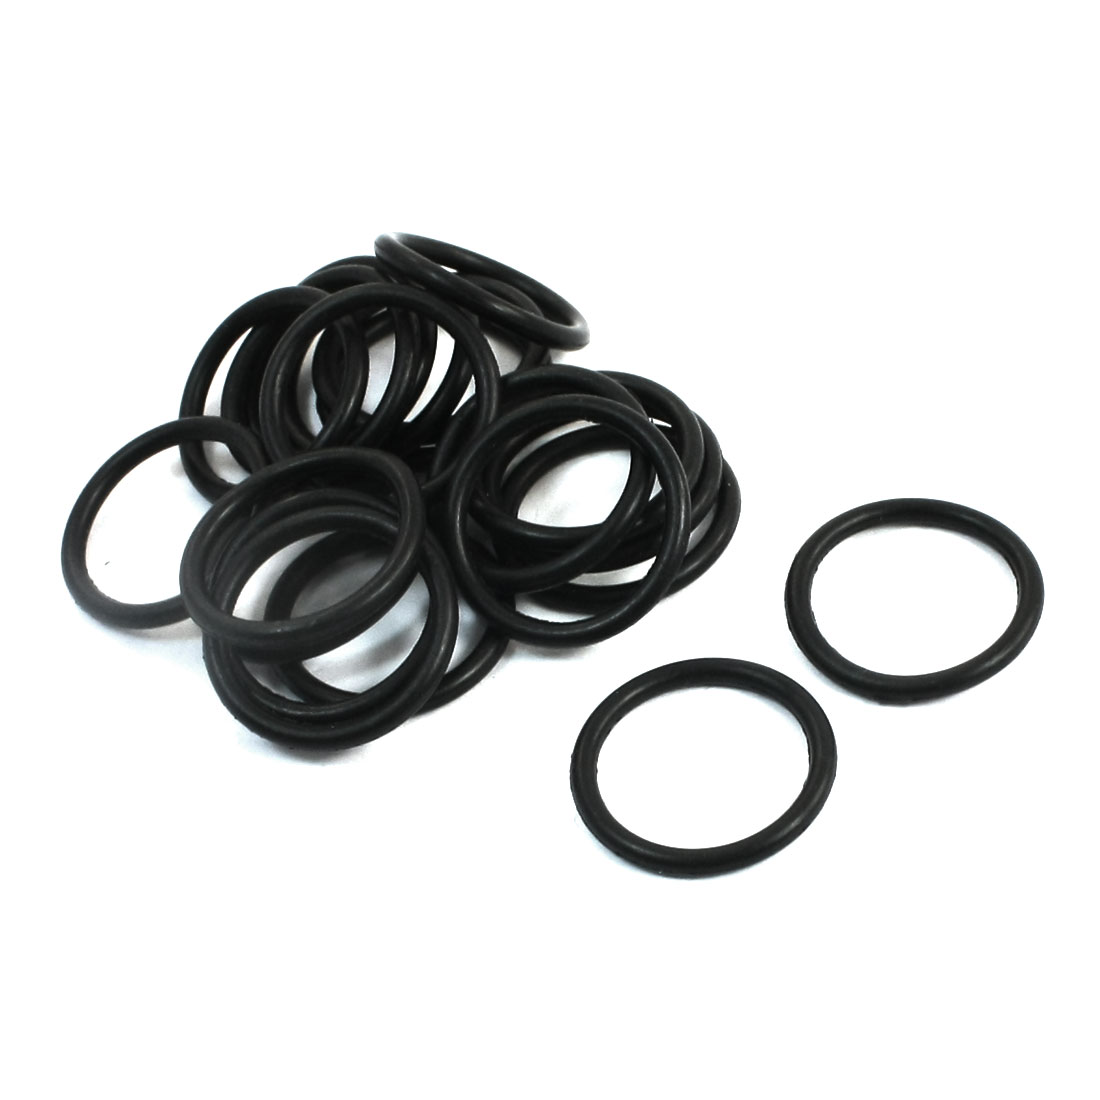 20PCS Electric Power Tool Part Black Rubber Oil Seal O Rings 17.6x1.8mm